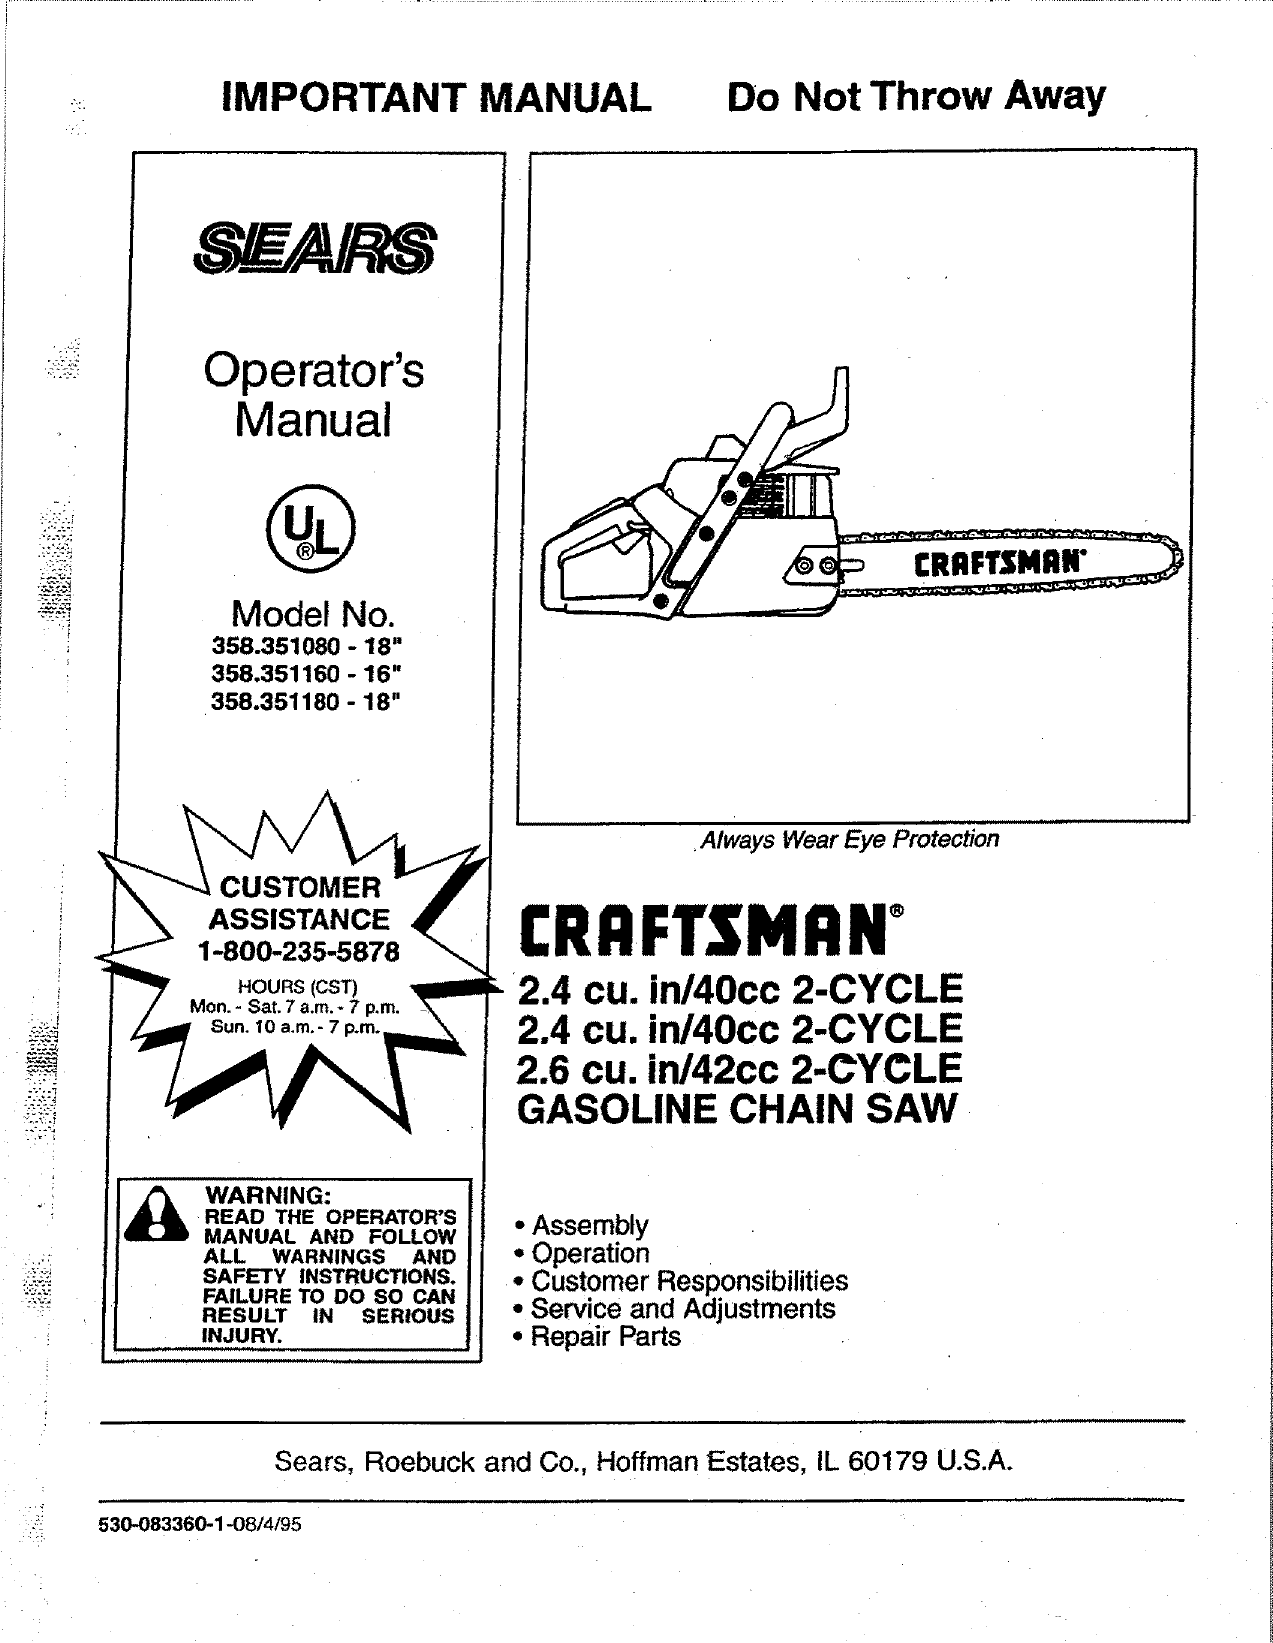 Craftsman 40cc Chainsaw Fuel Line Diagram